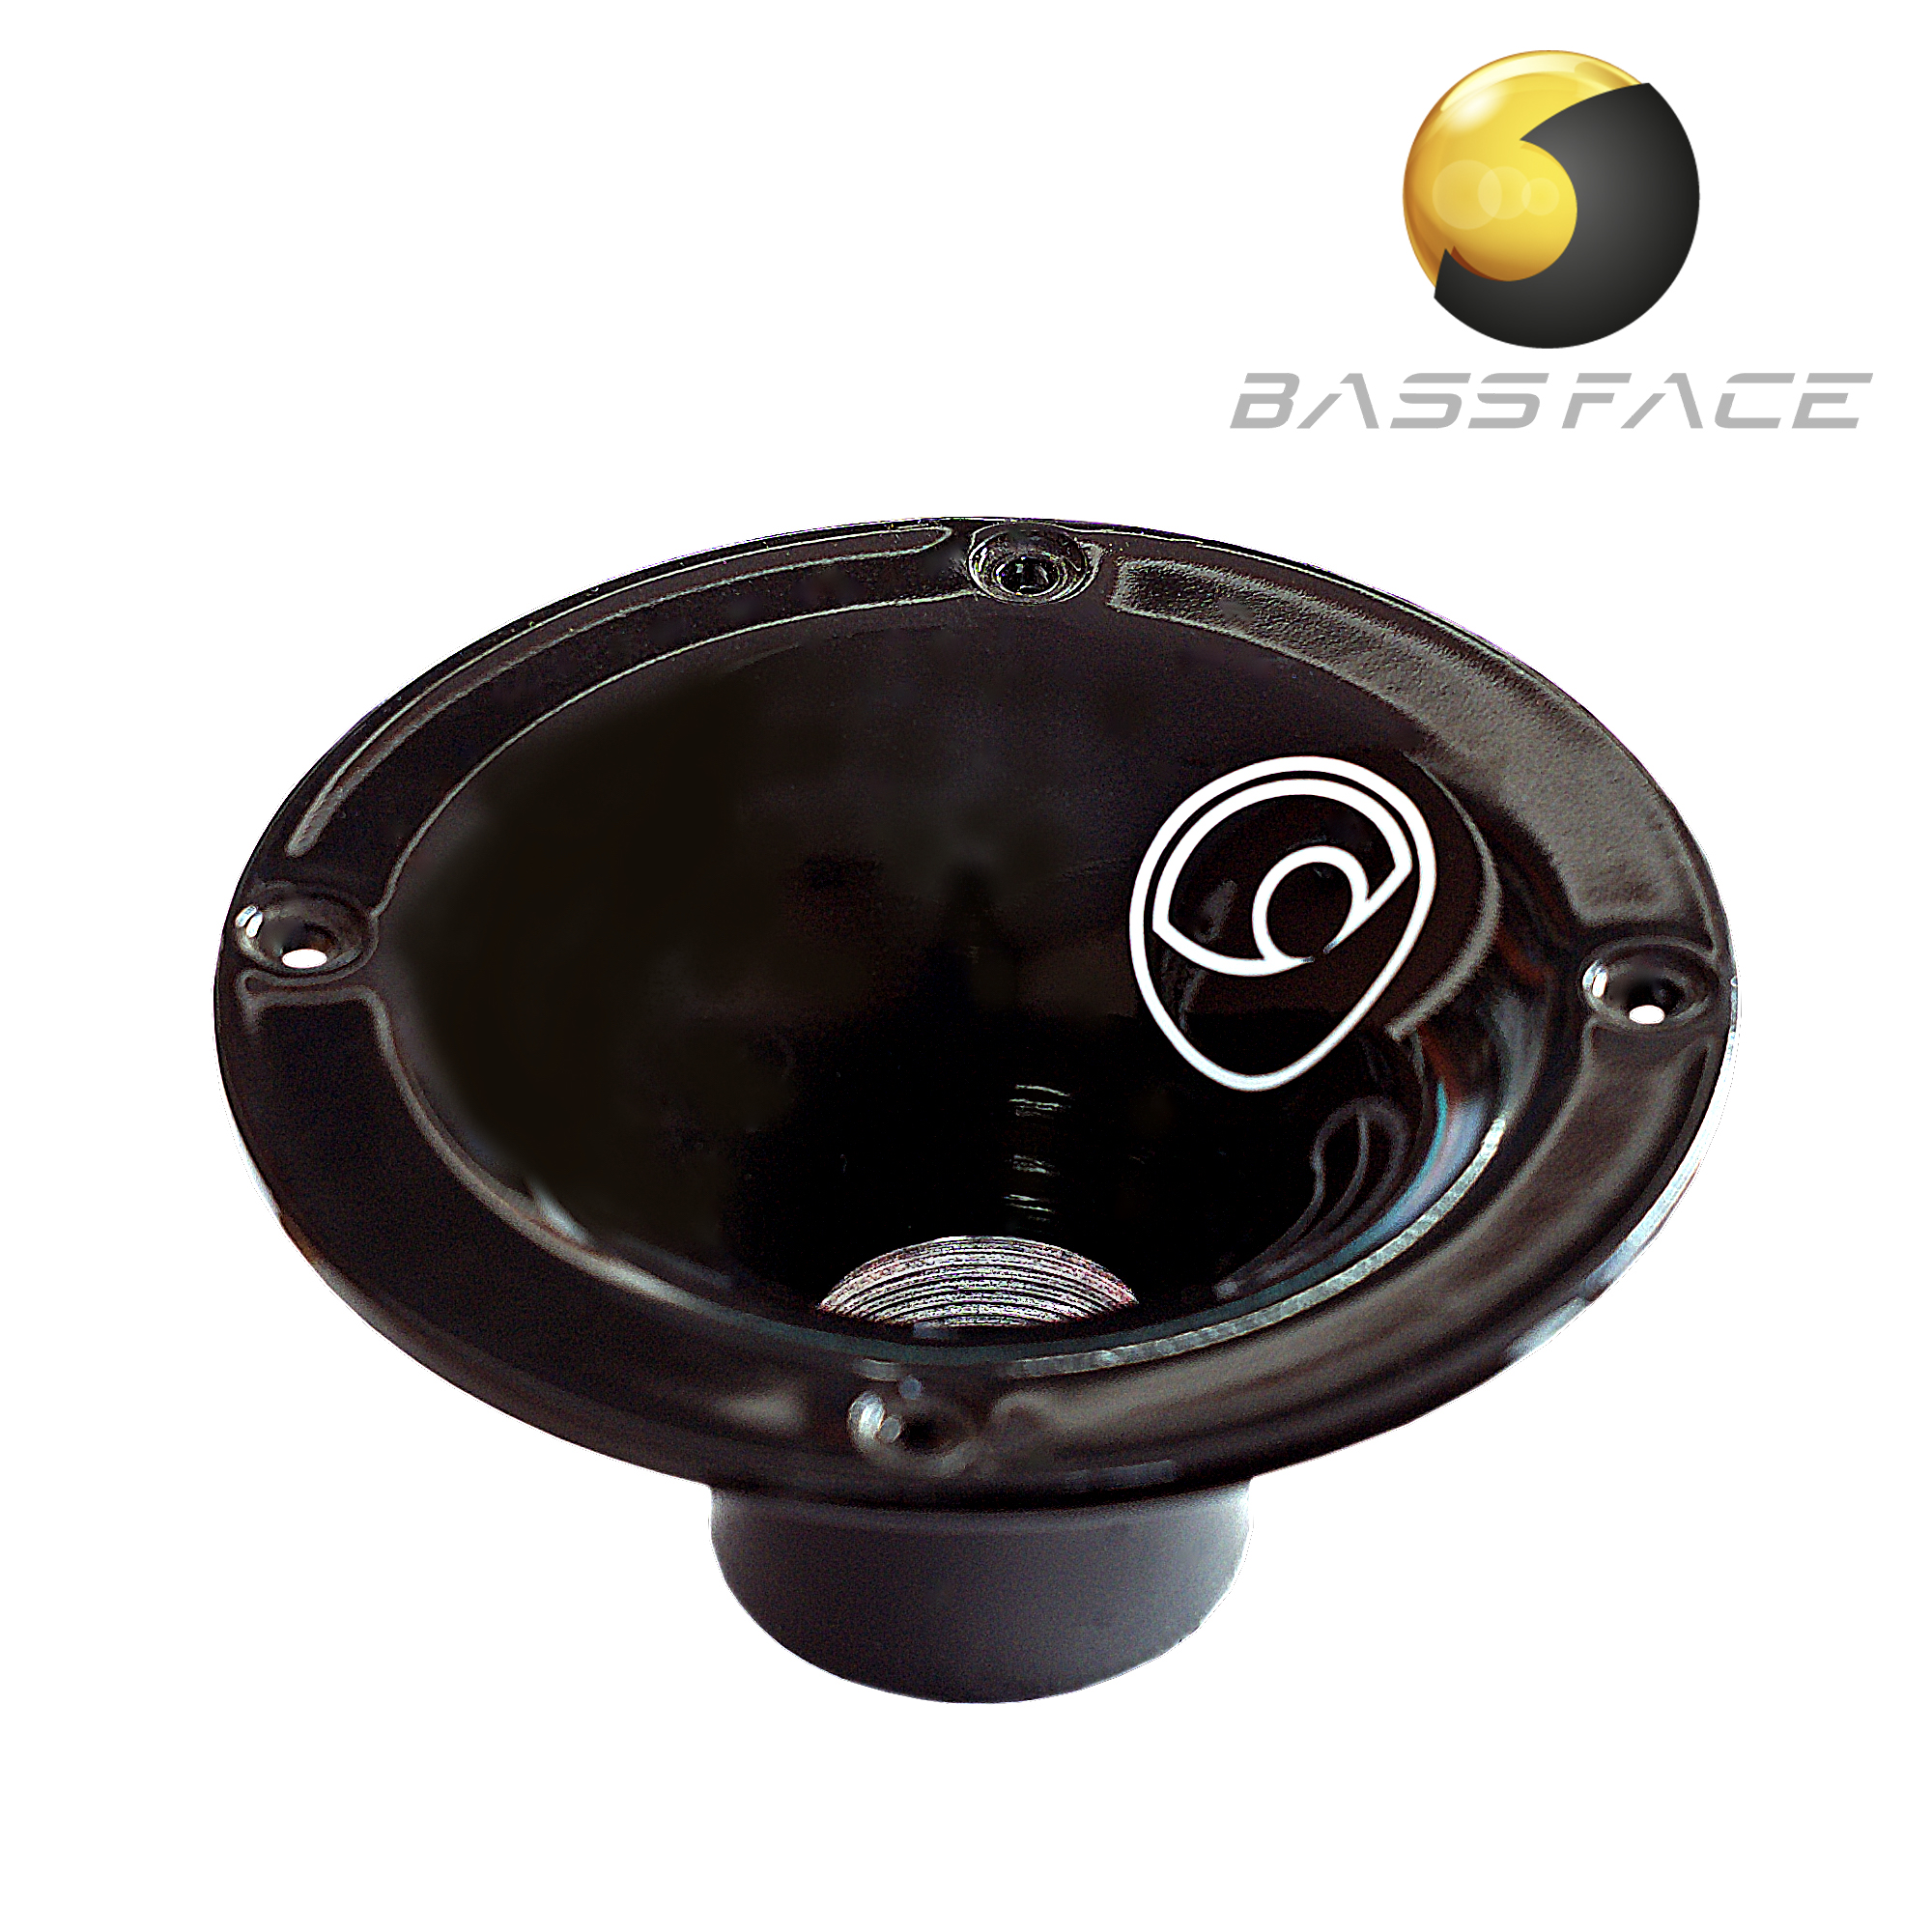 Bassface Car Audio The Specialists Wiring Schematic Diagram 300w Subwoofer Power Amplifier Splth2 Compression Driver Horn With Screw In 1 3 8